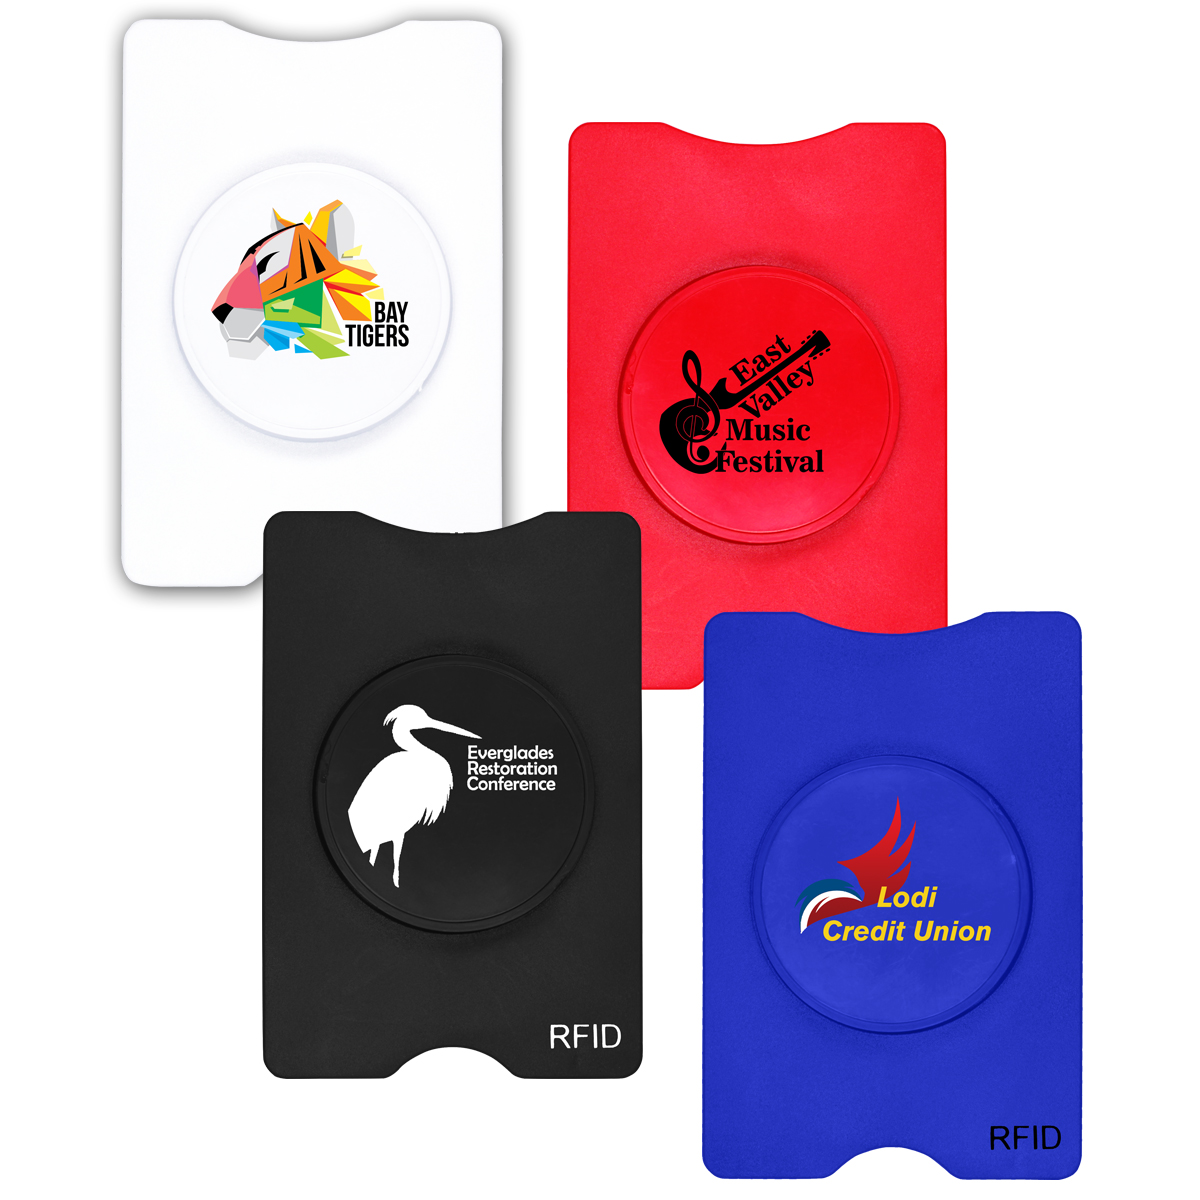 RFID Stand-Out Phone/Card Holder